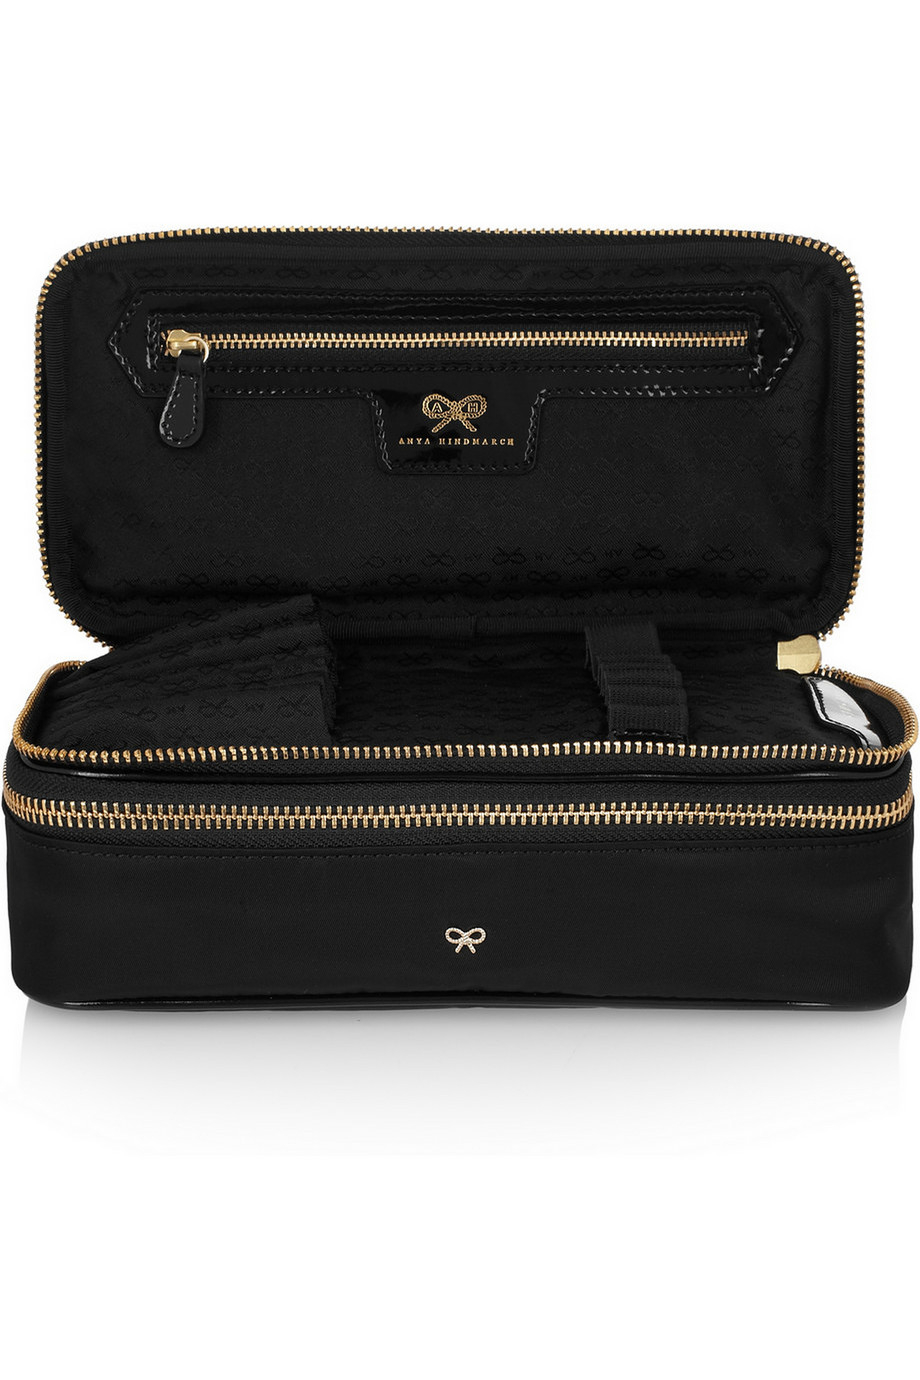 Lyst - Anya Hindmarch Make-up Ii Medium Patent Leather-trimmed Cosmetics  Case in Black 91a945e0eb52e